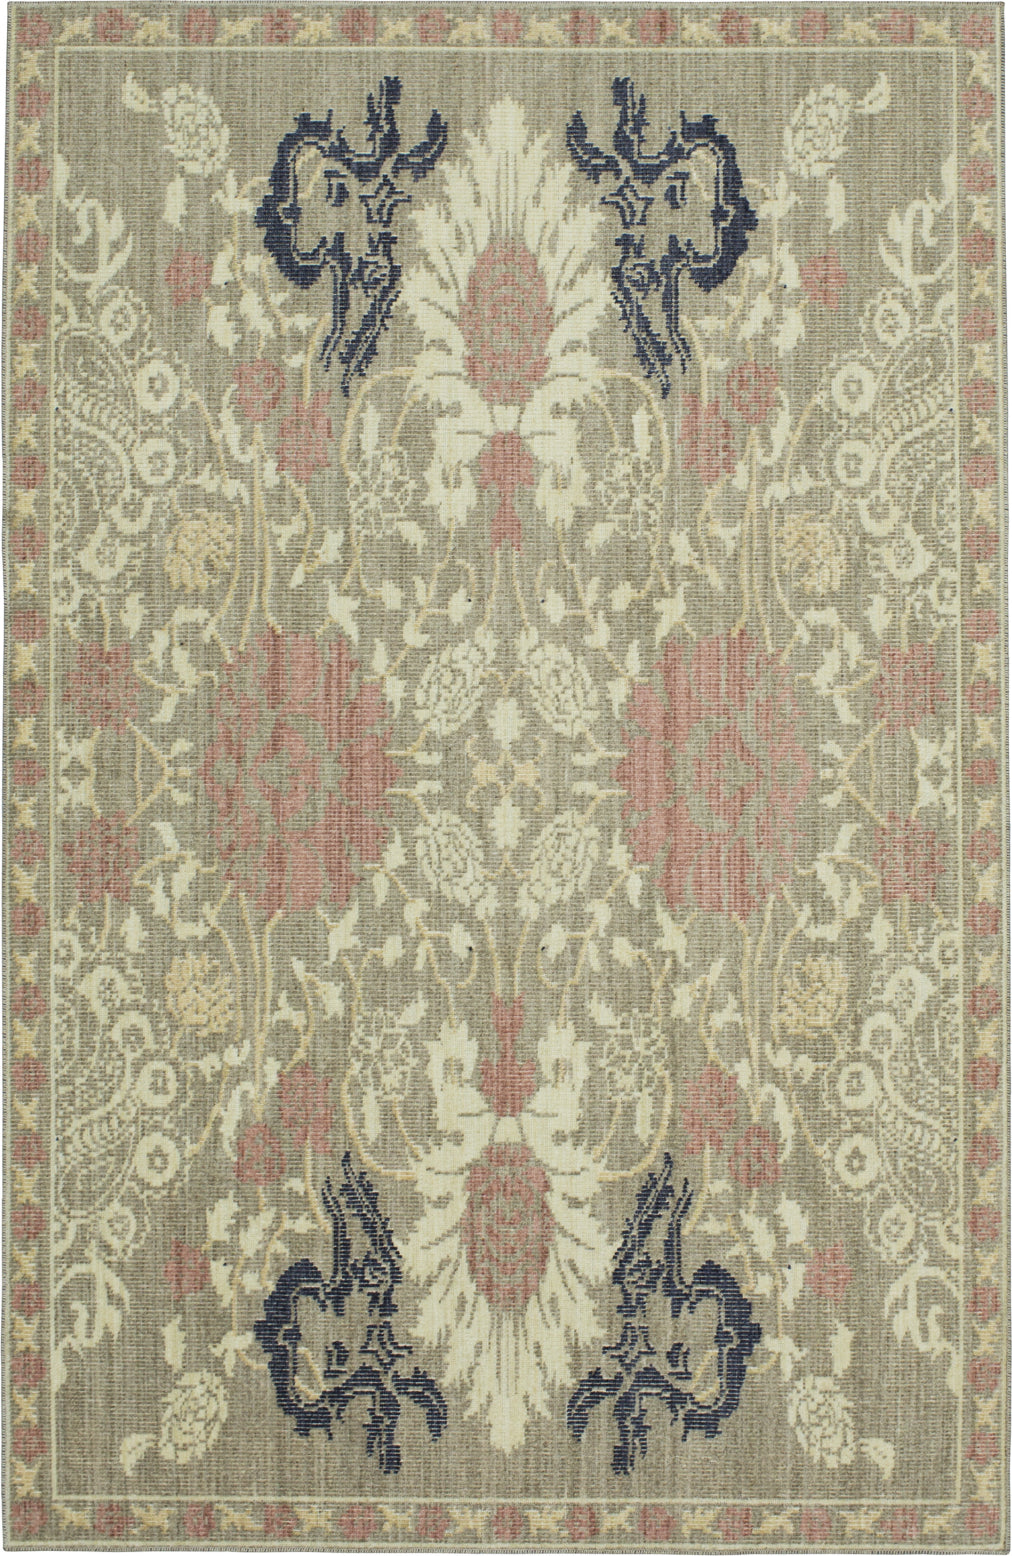 Karastan Vintage Tapis Paris Garden Gray Area Rug by Patina Vie main image